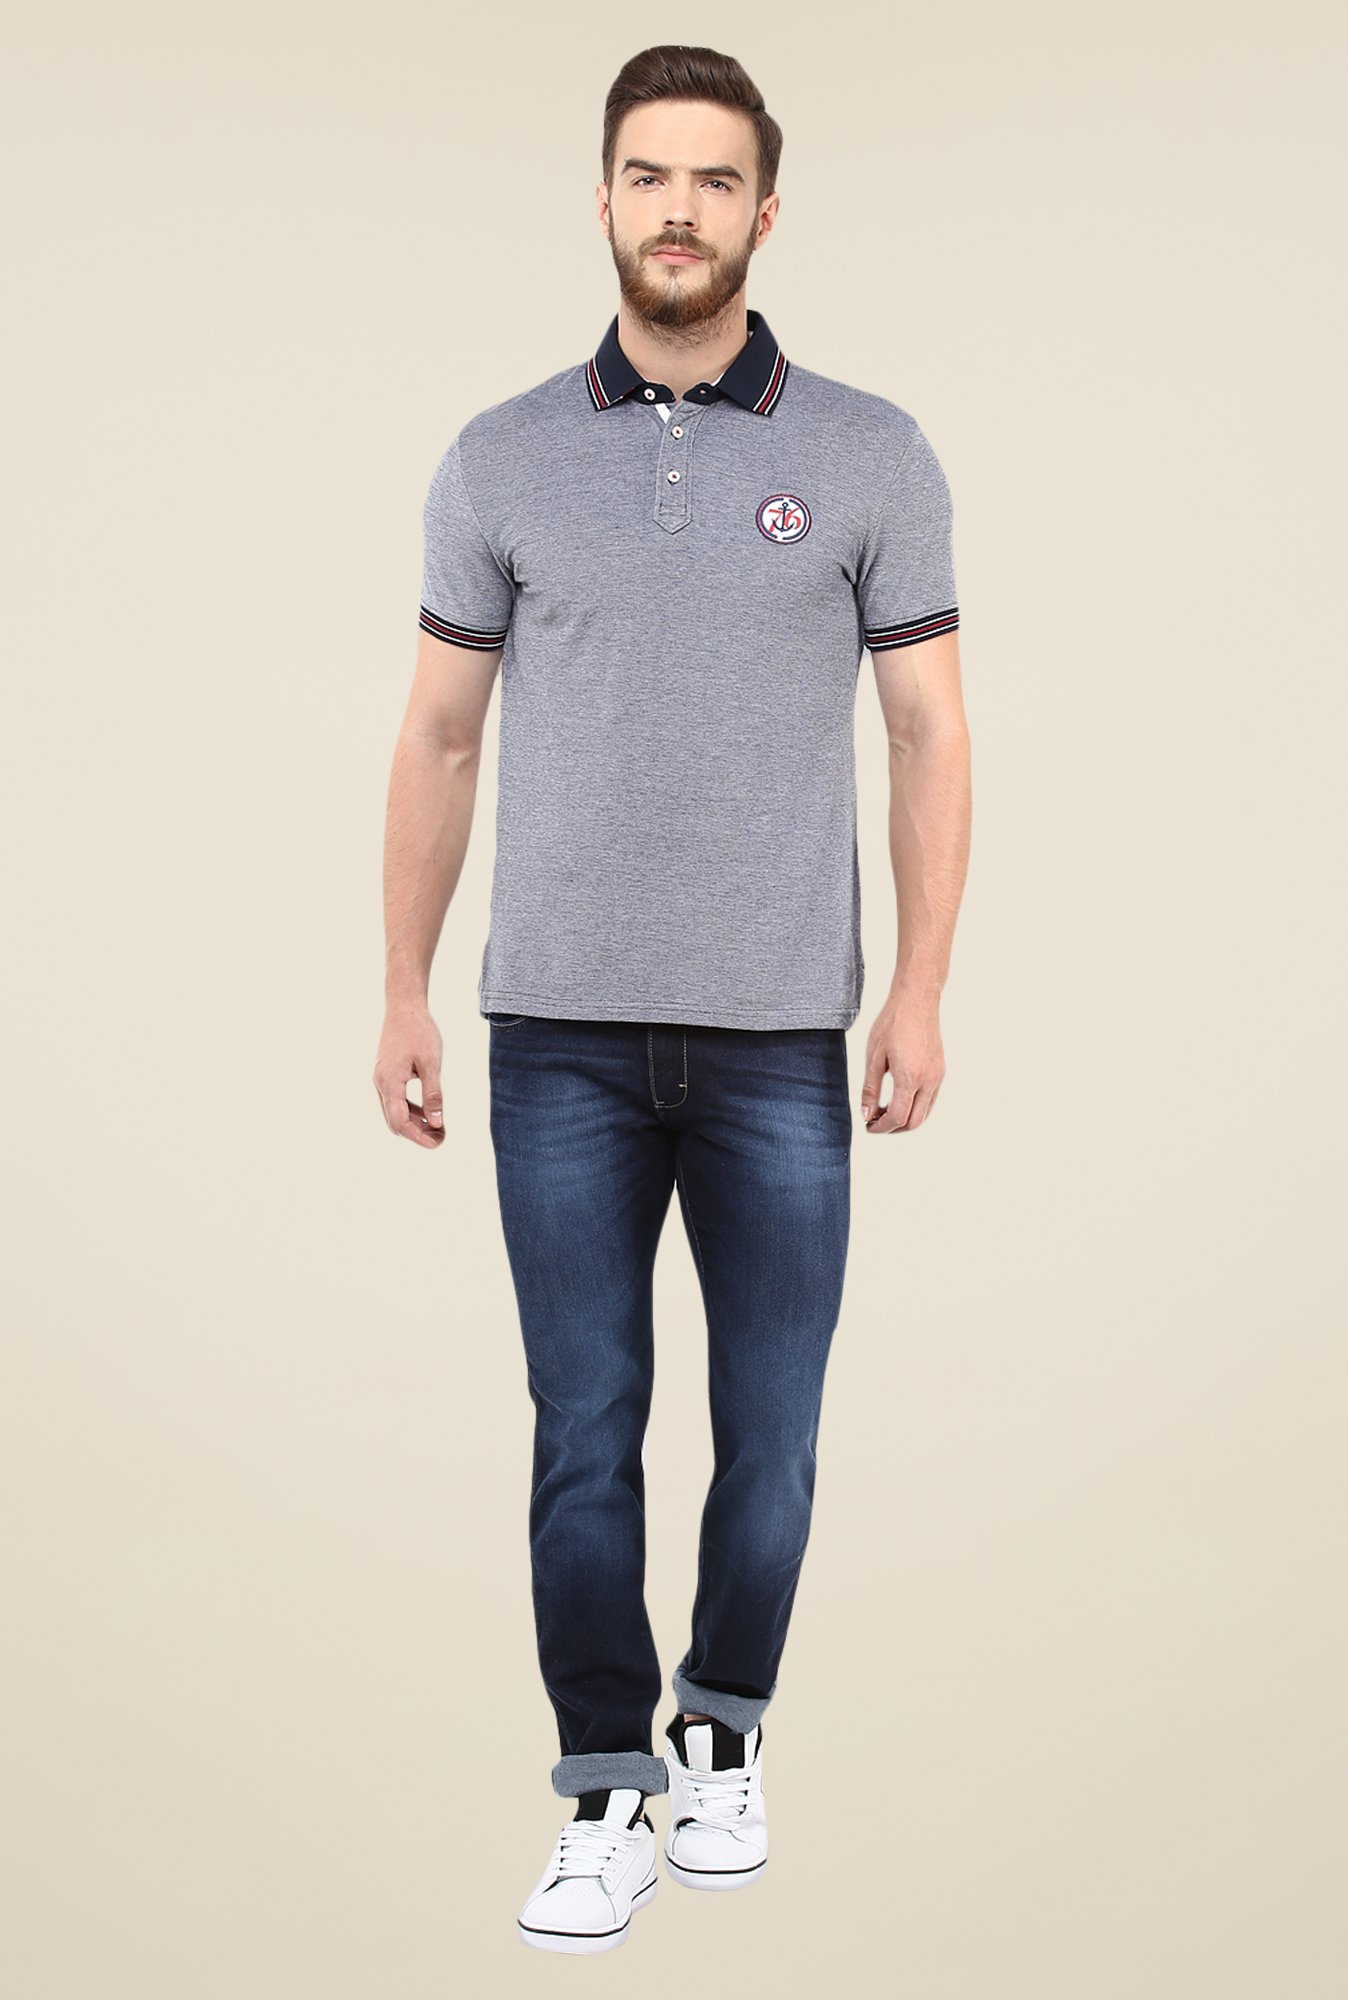 celio* Grey Solid Polo T Shirt